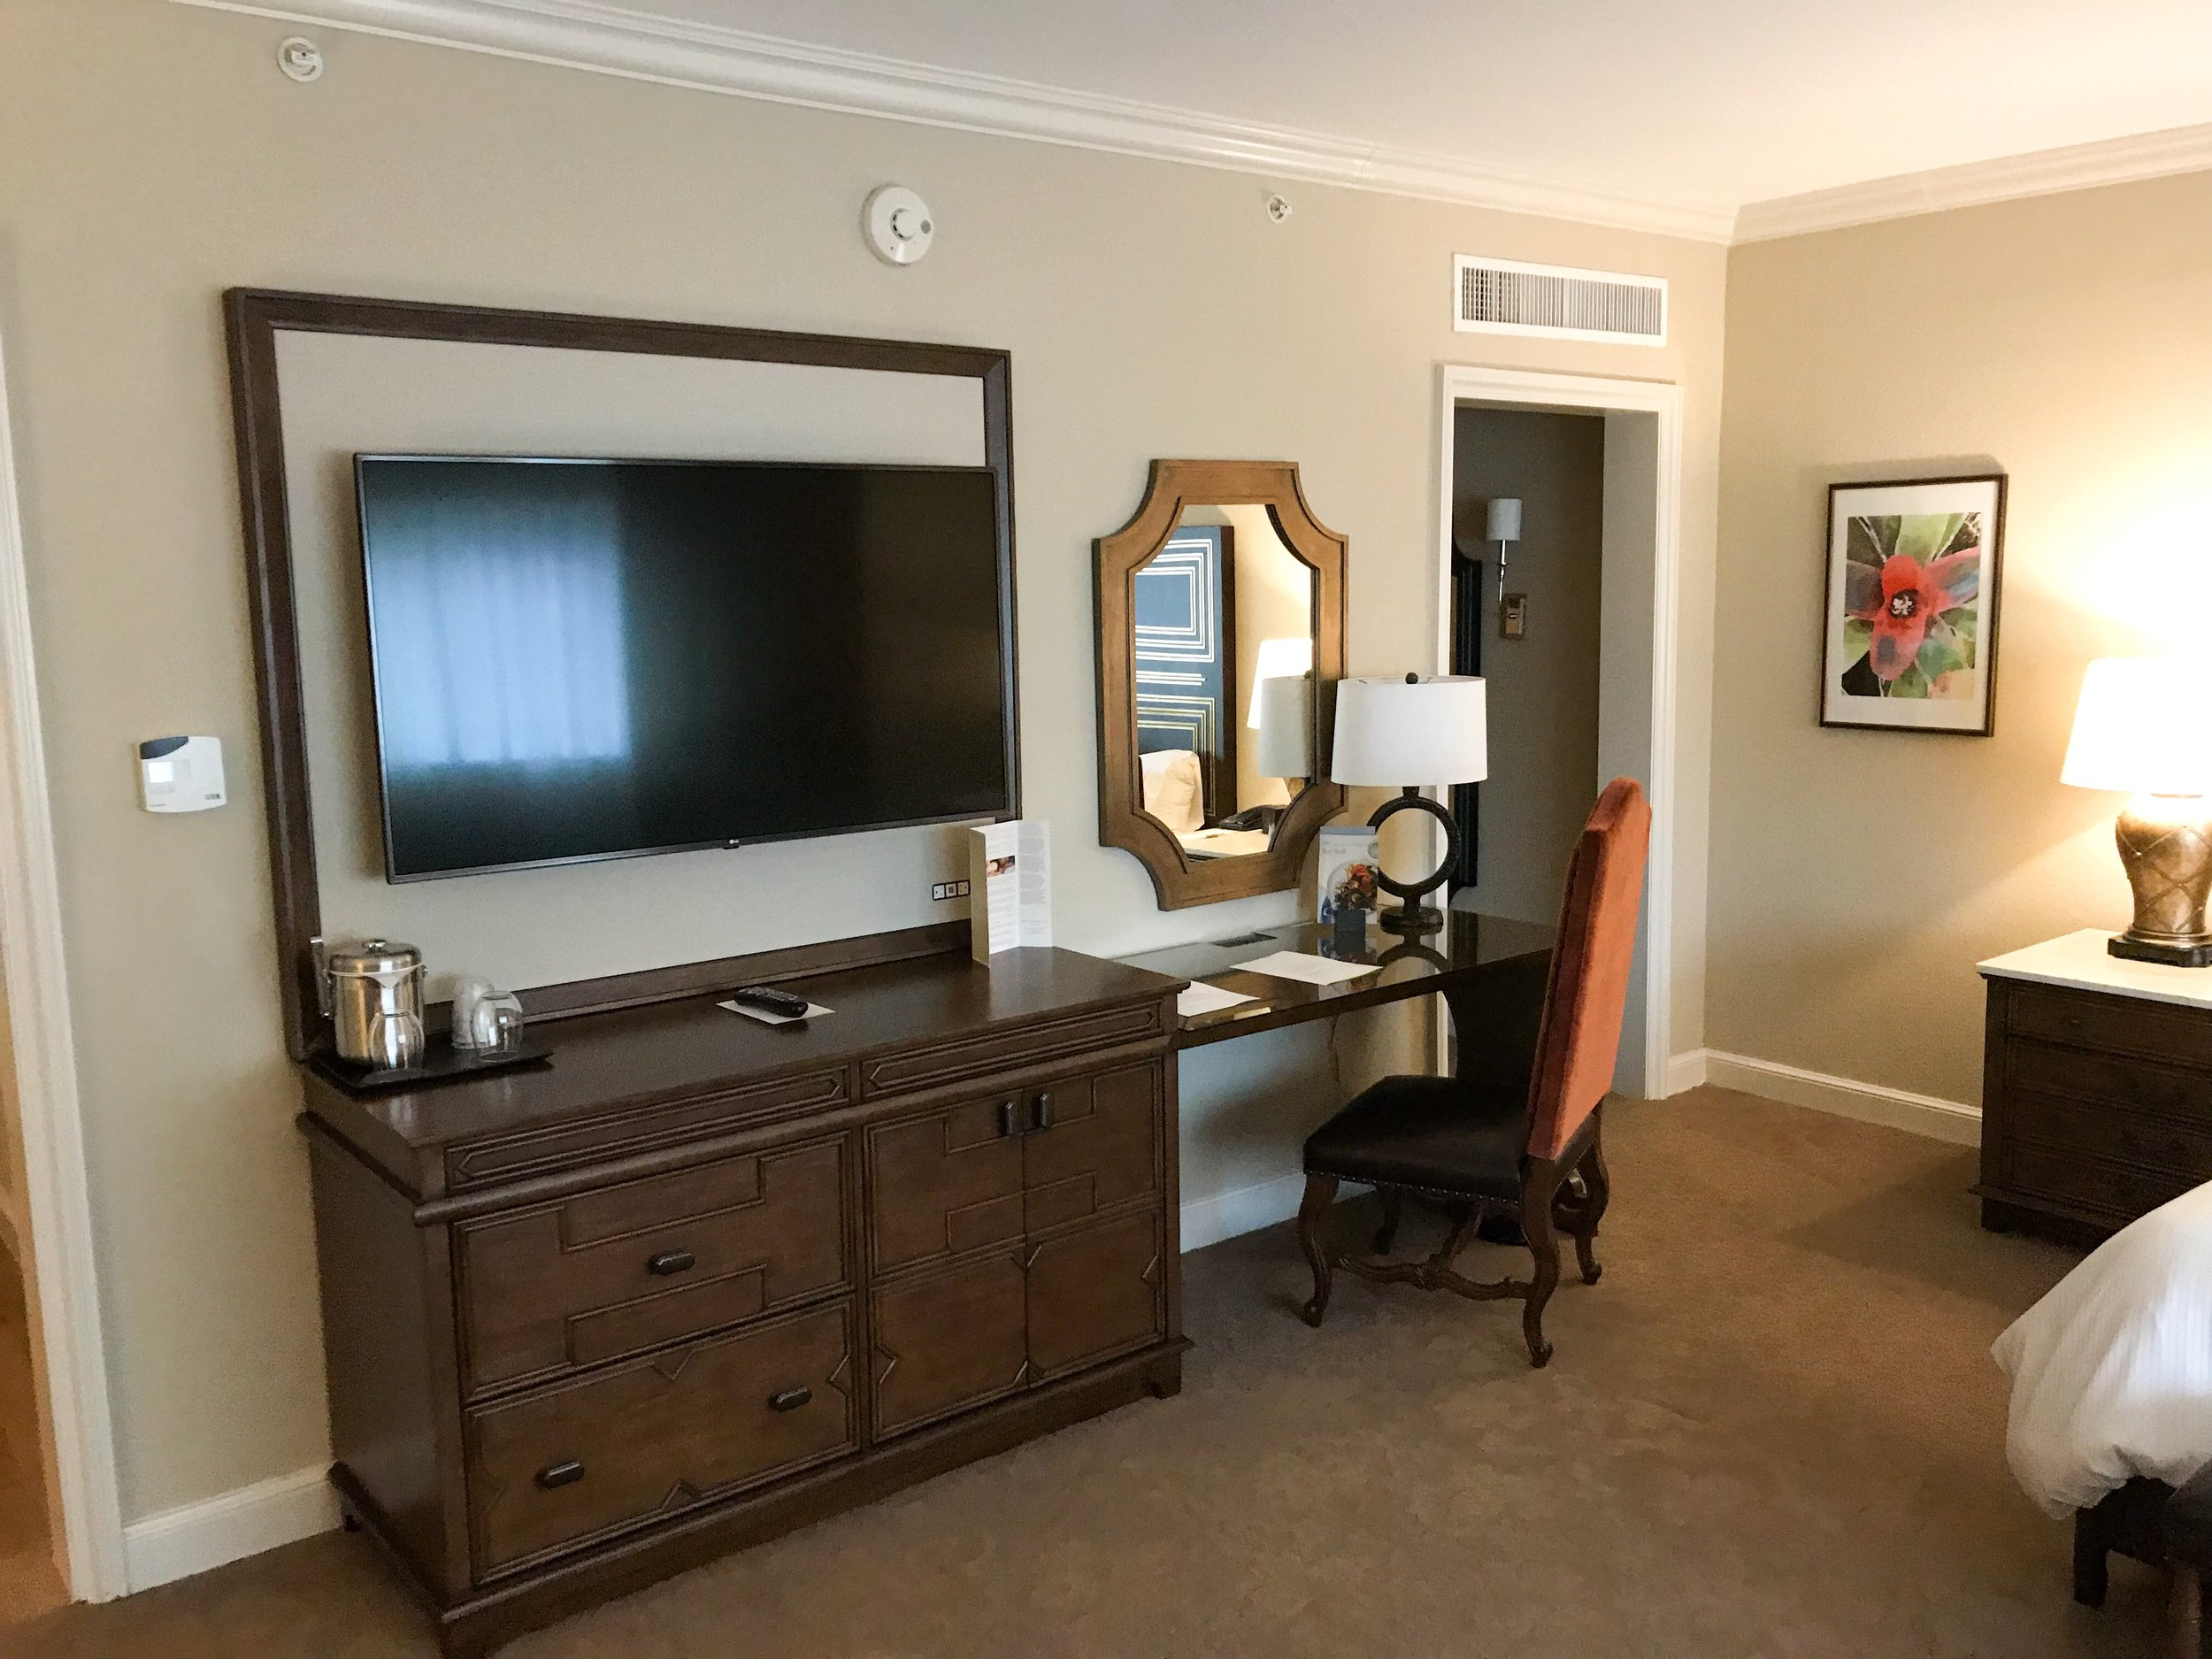 Large TV and desk.